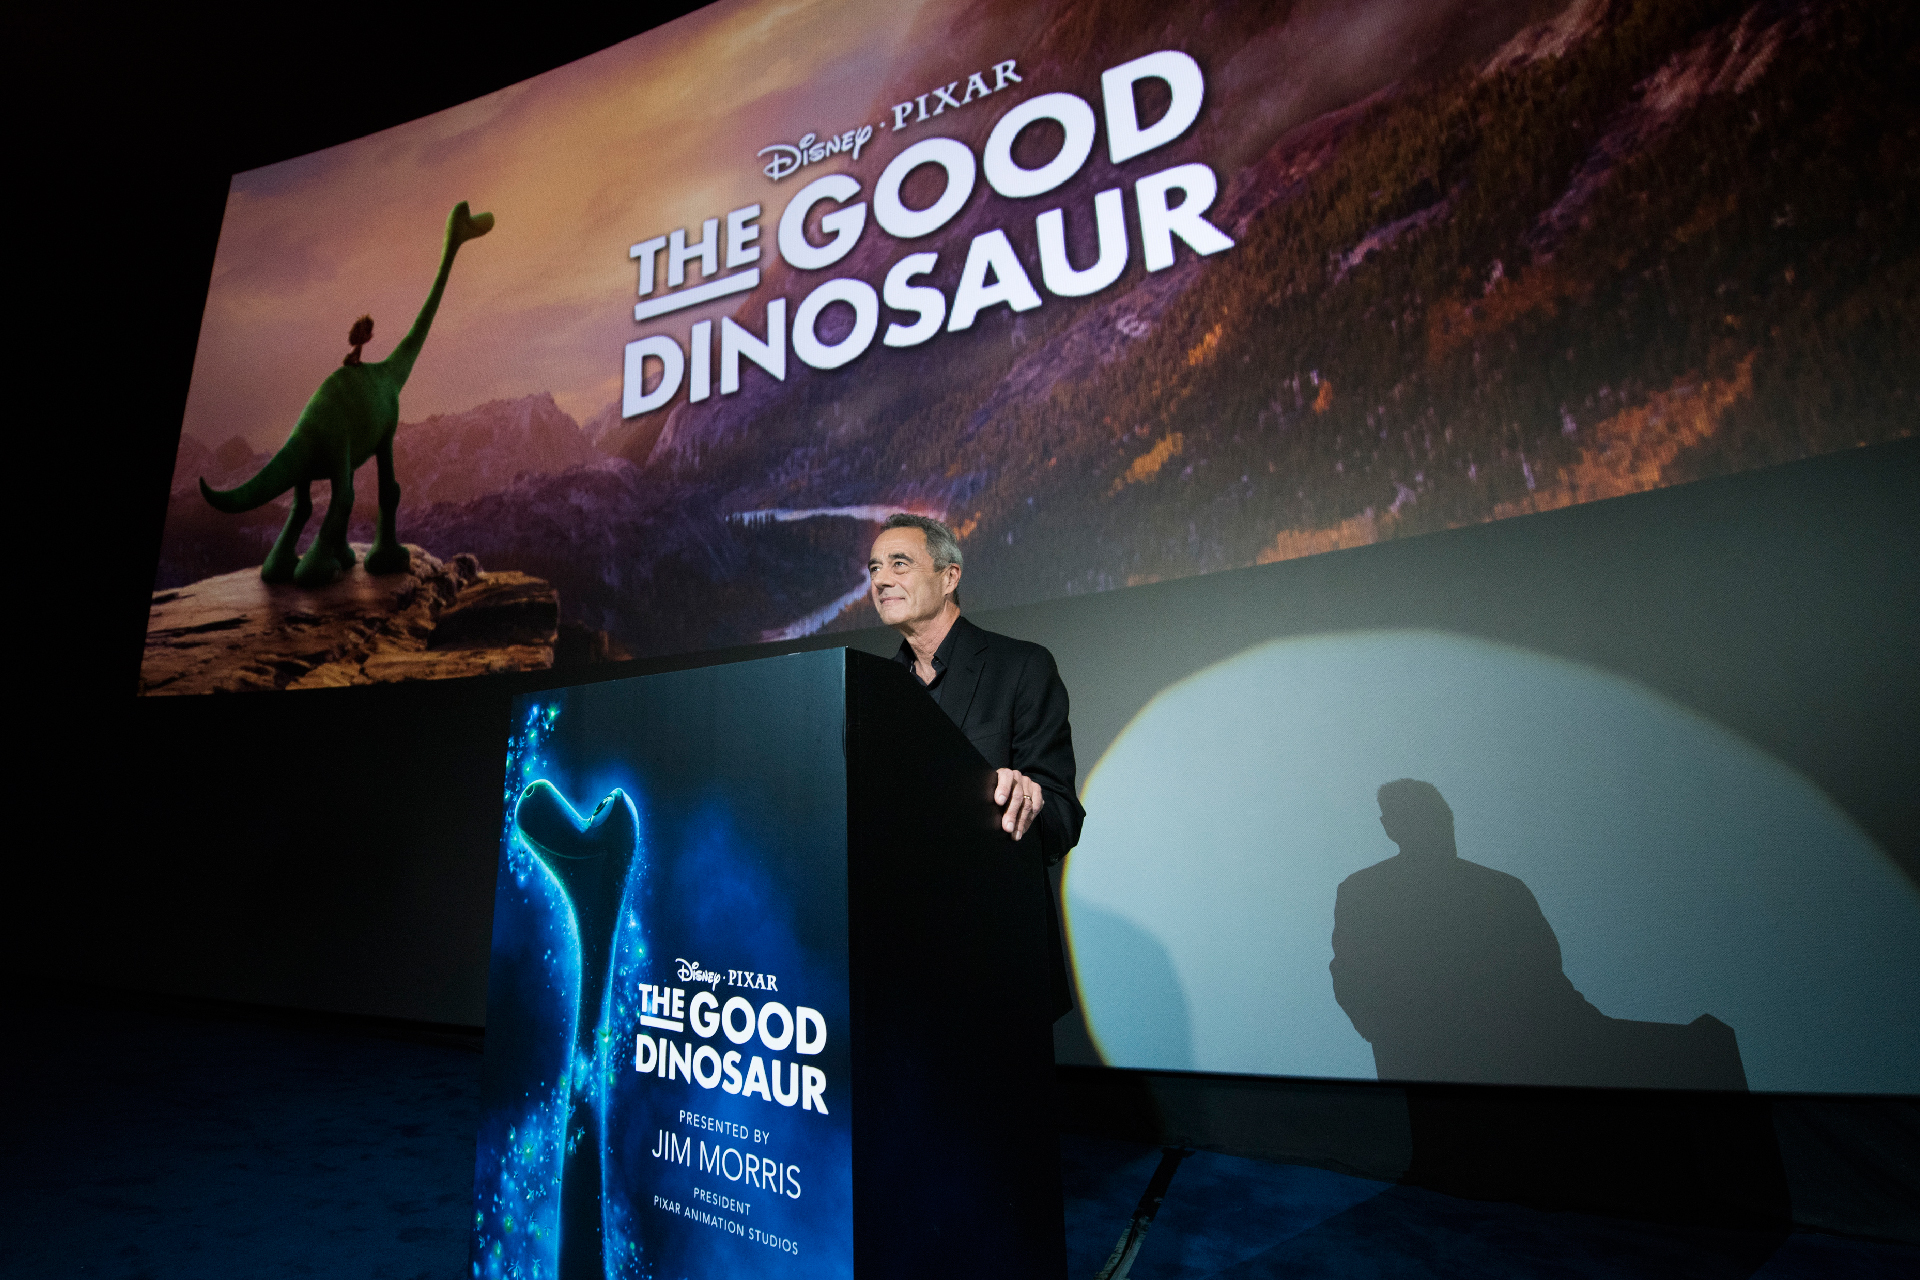 Project detail (Disney Studio - The Good Dinosaur)-03